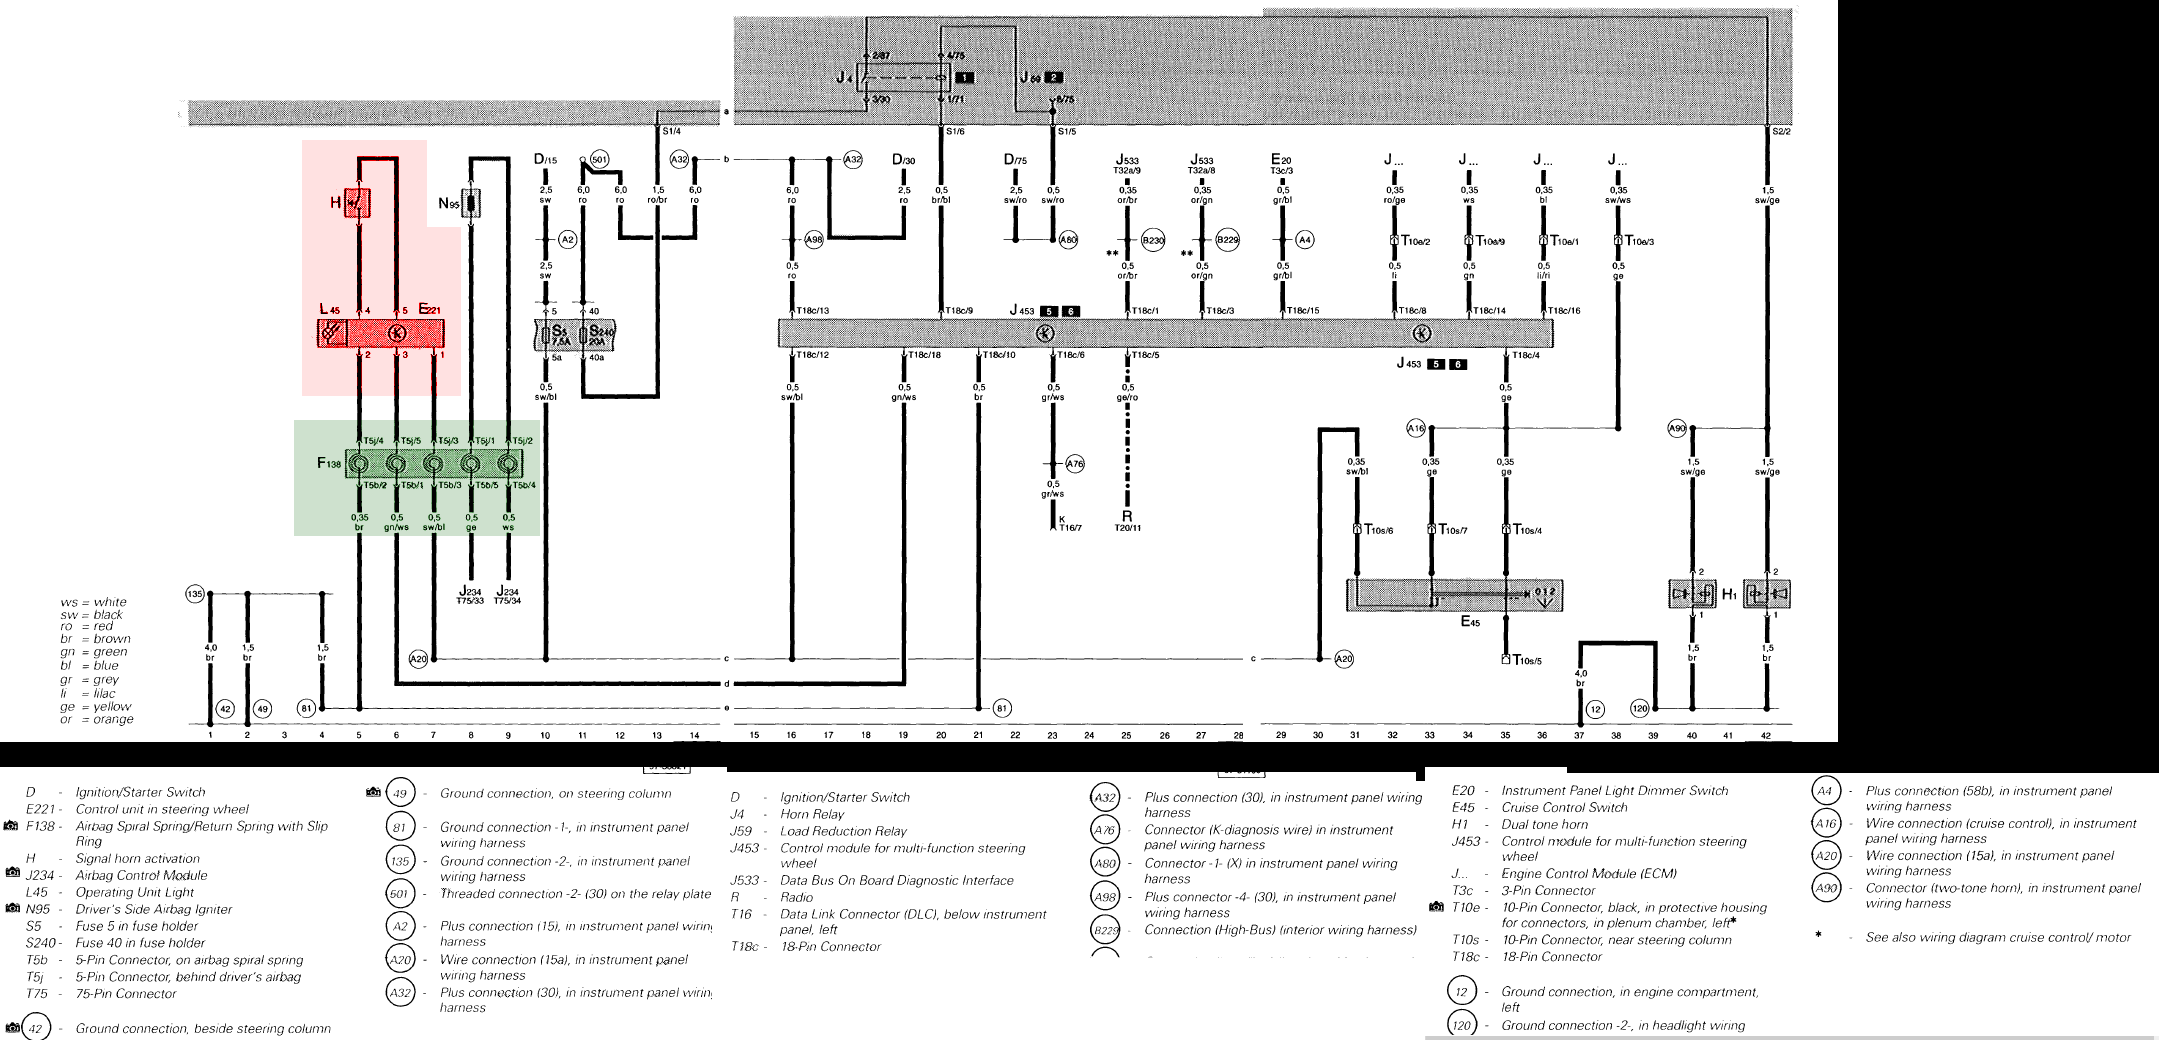 diagram mk4 golf wiring diagram mk4 golf interior \u2022 wiring diagrams j mk4 golf wiring harness at bayanpartner.co